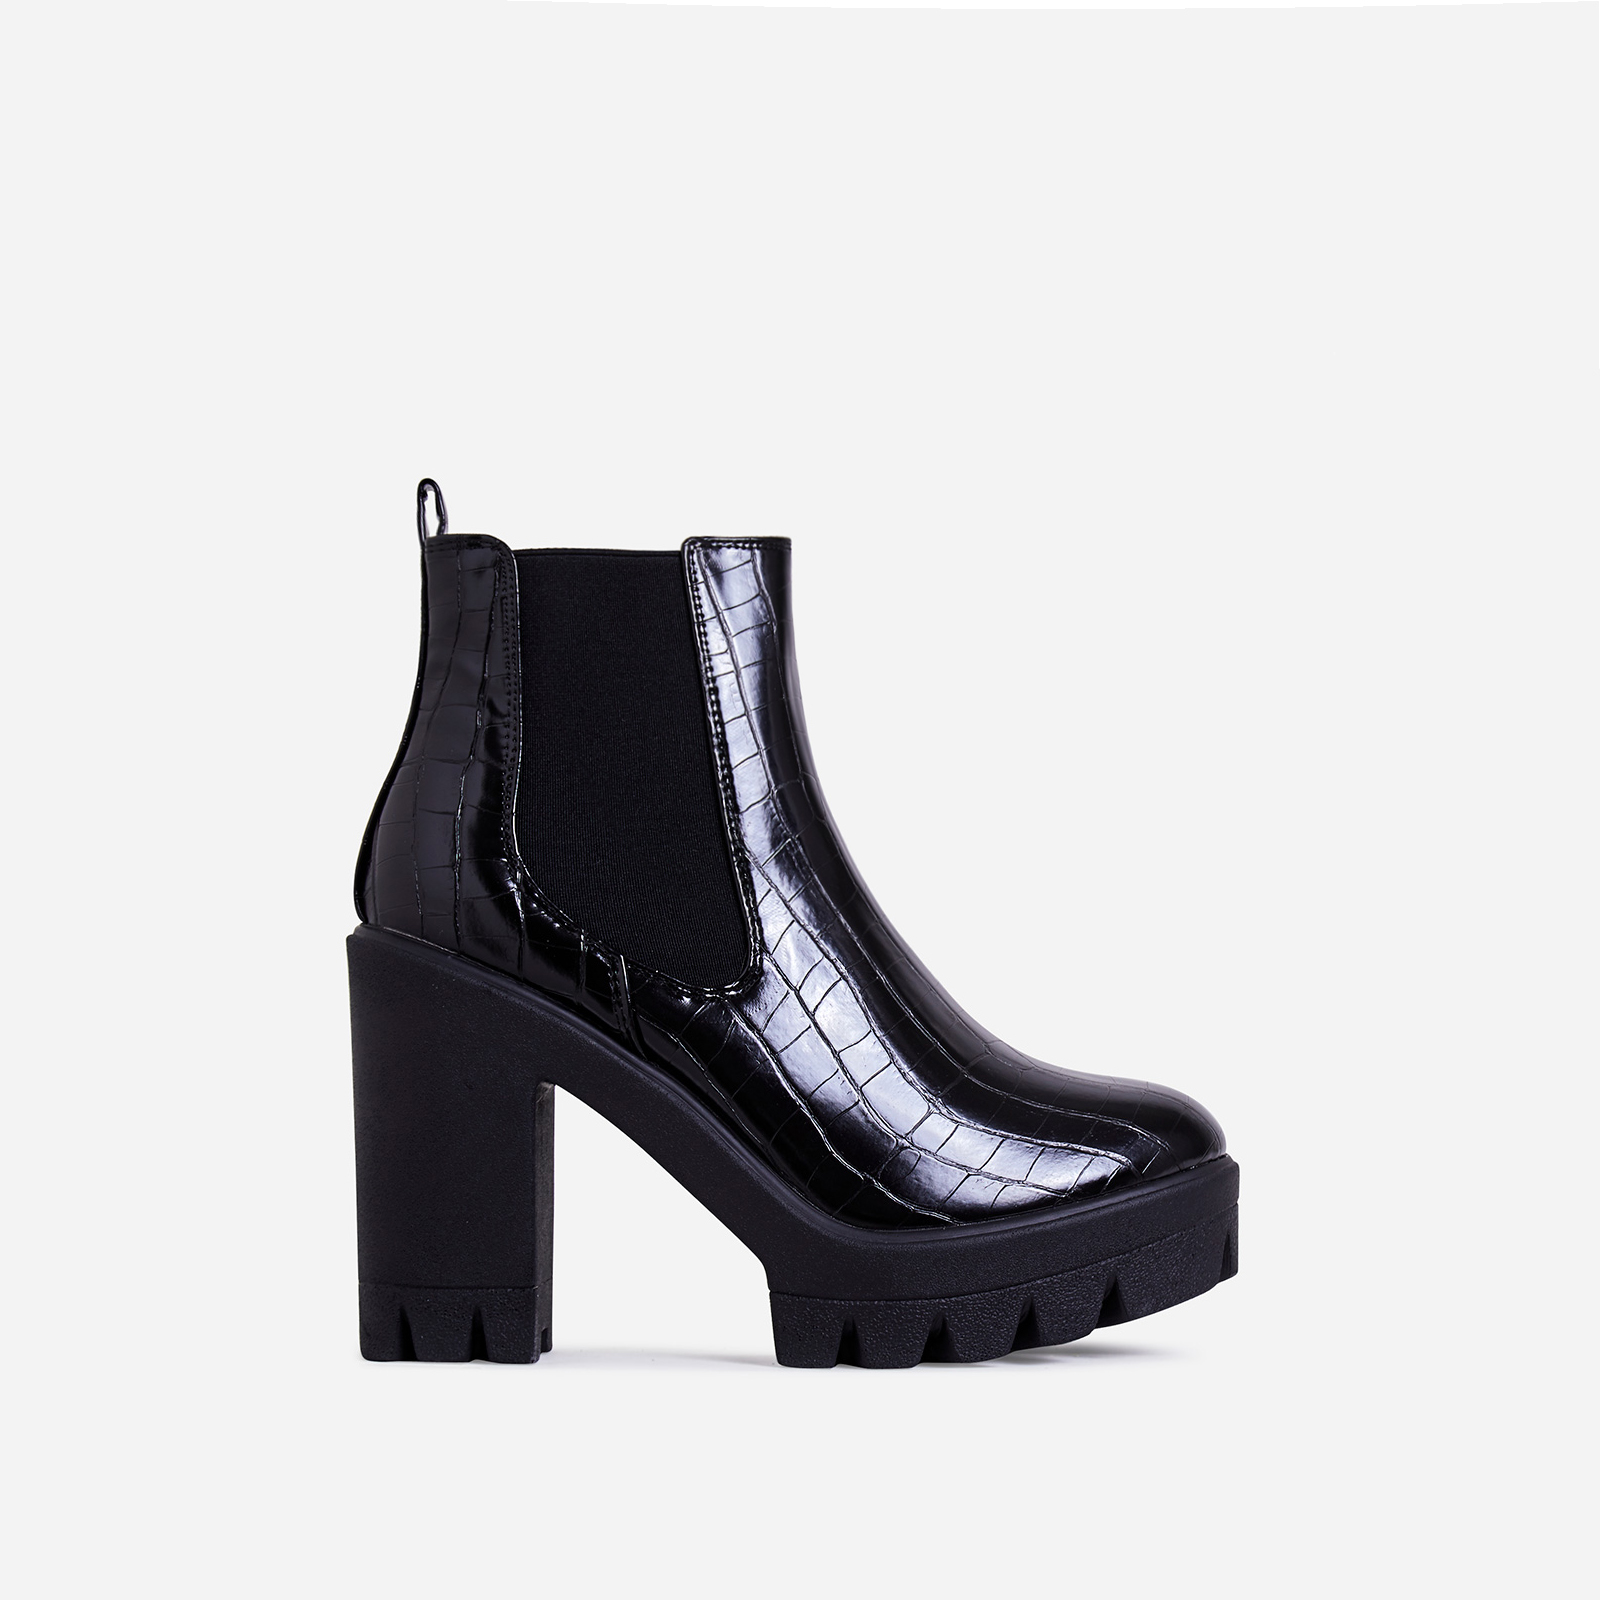 Liya Chunky Sole Ankle Chelsea Boot In Black Croc Print Faux Leather